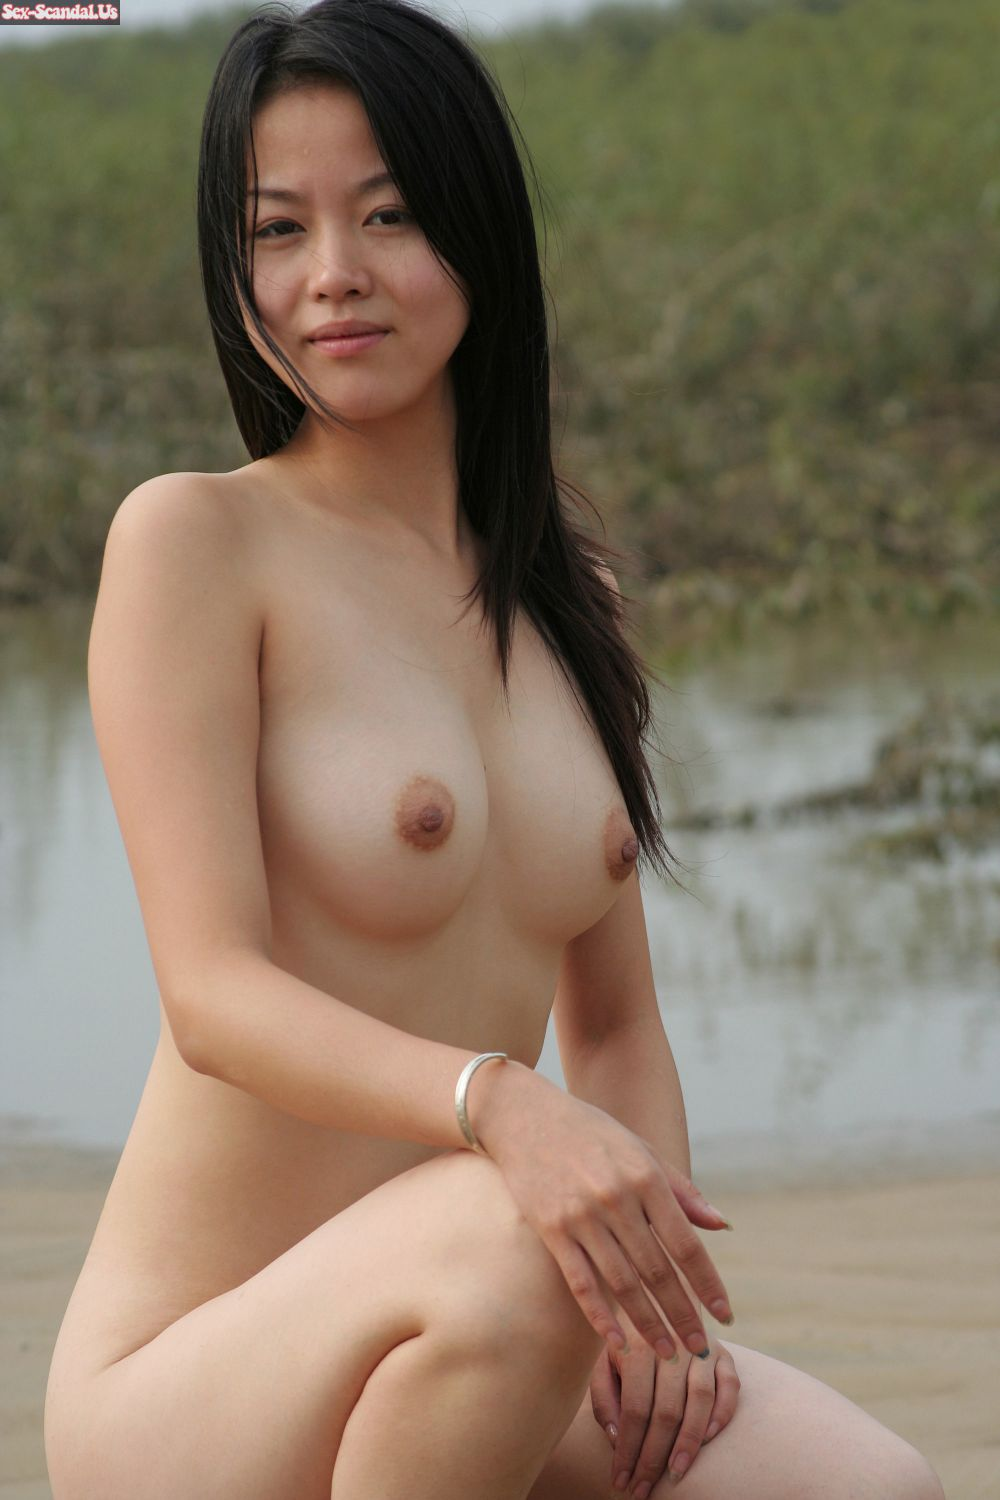 Teen first time poseing nude